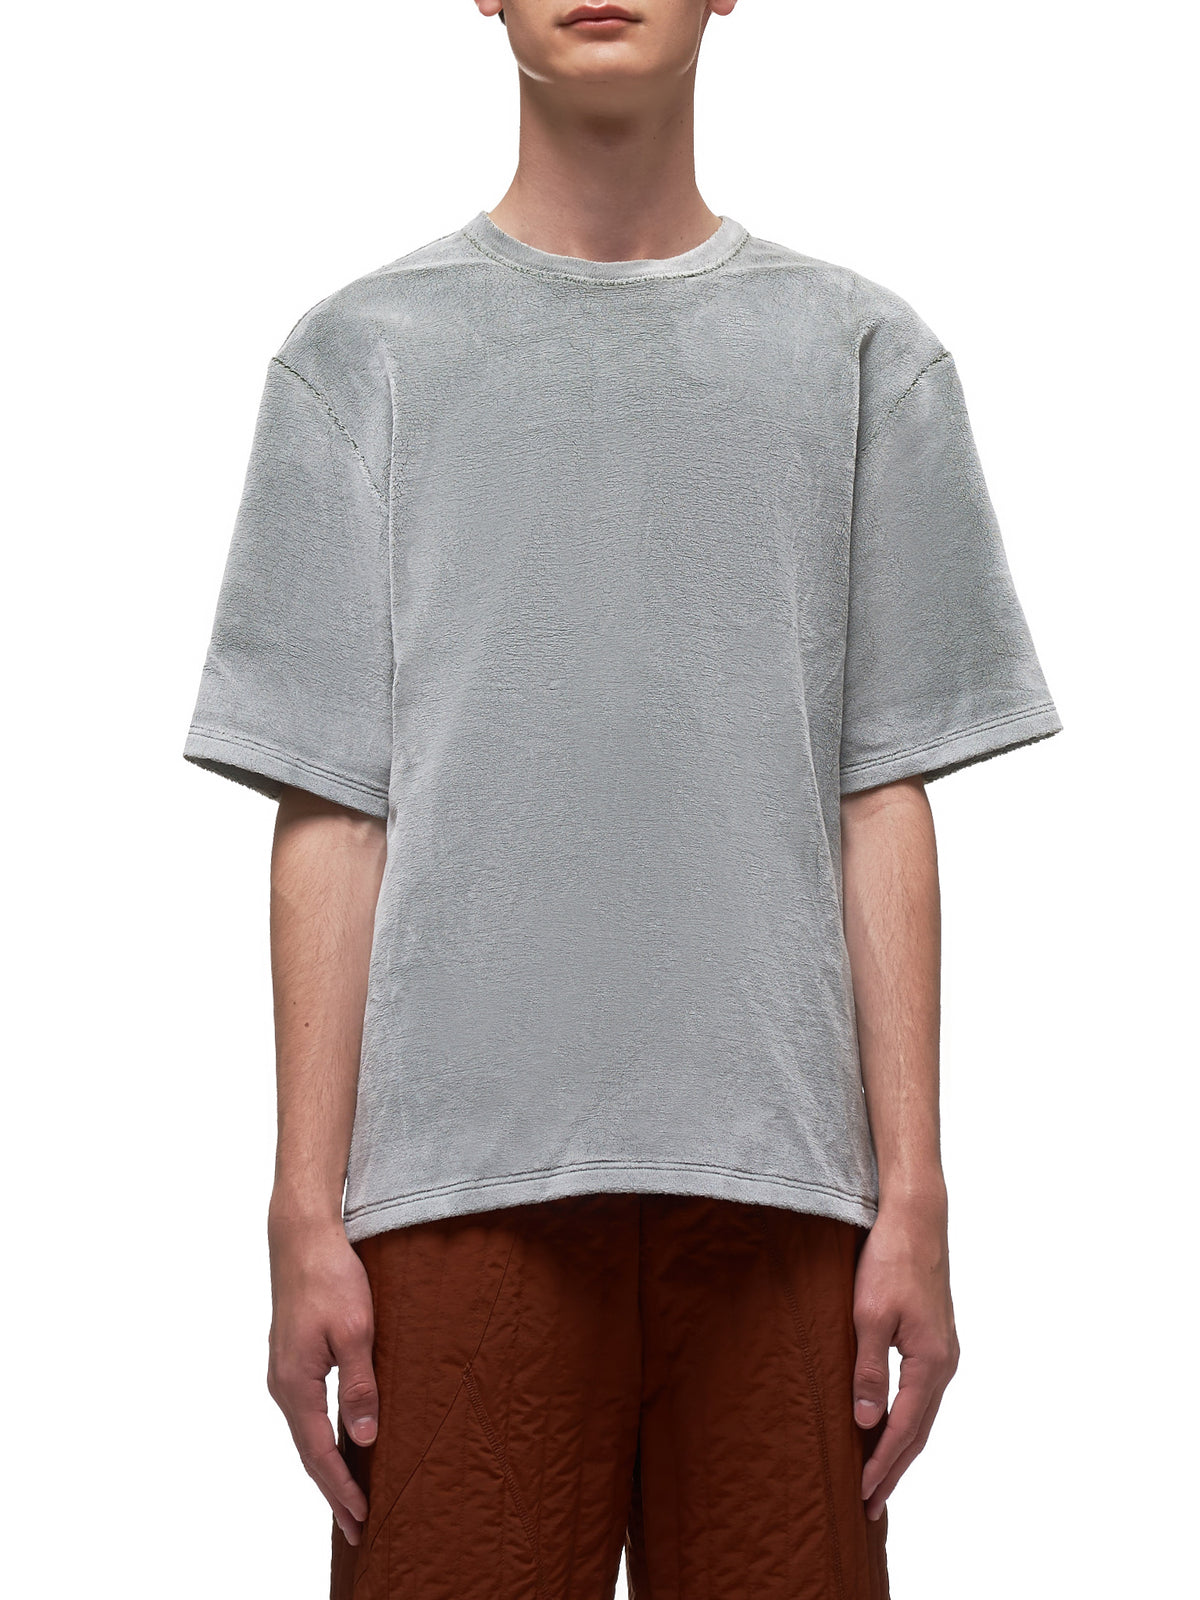 Synthetic Mink T-Shirt (005-09-LIGHT-SILVER-GREEN)